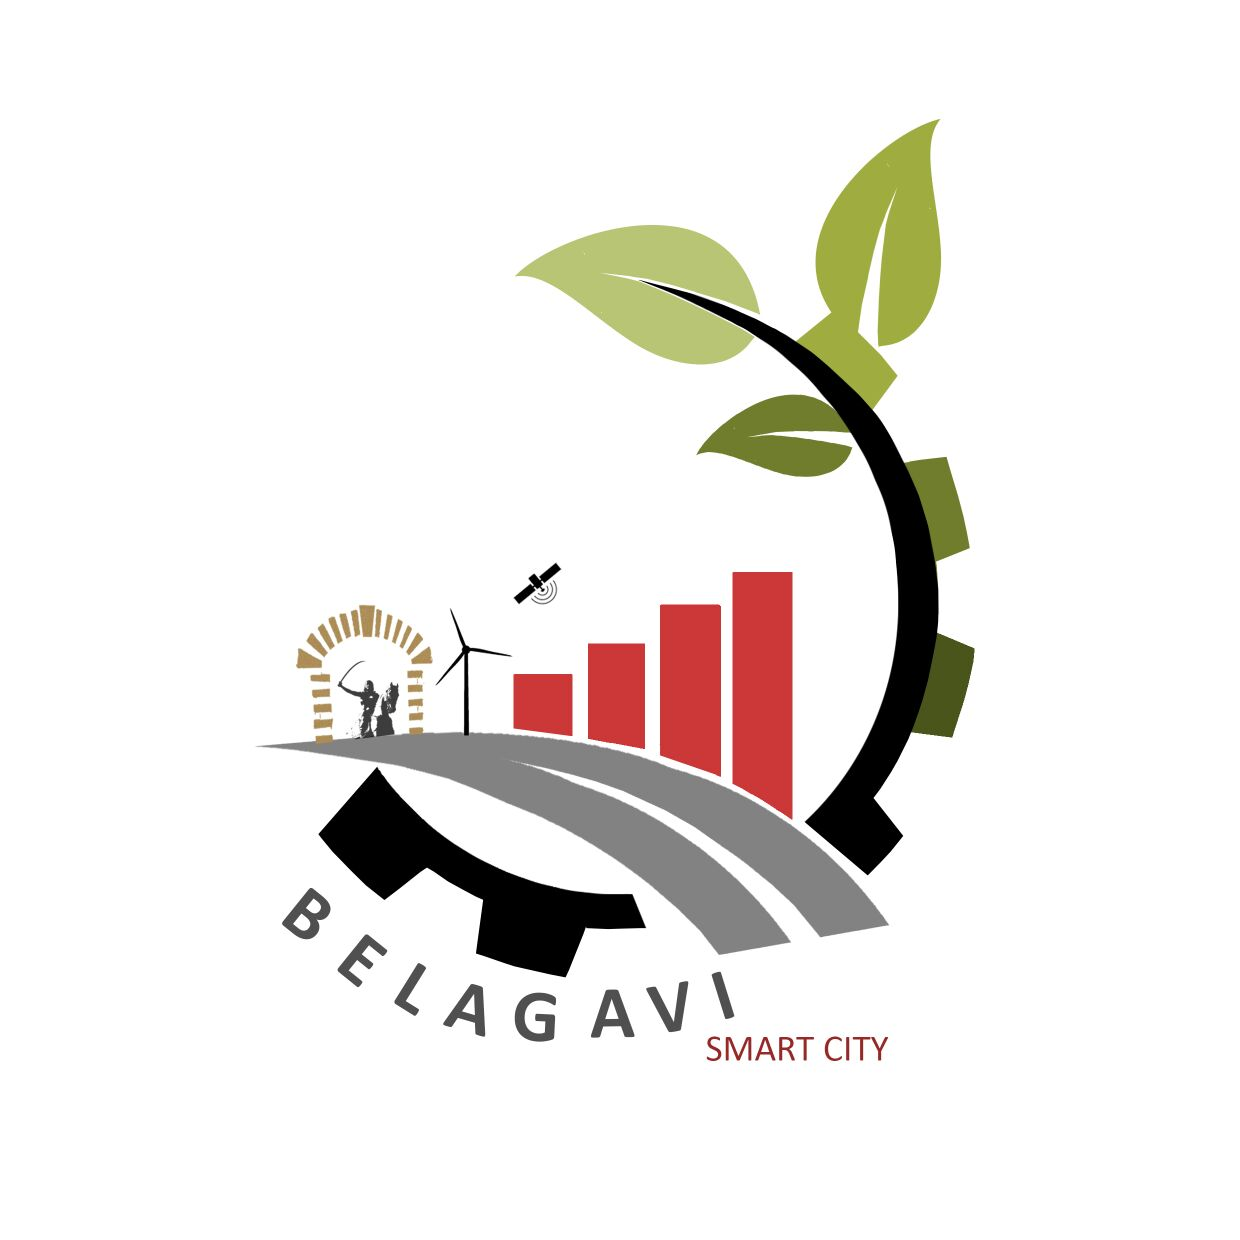 Tender Floated For Roof Top Solar Power Projects On Seven Government Buildings In Belagavi